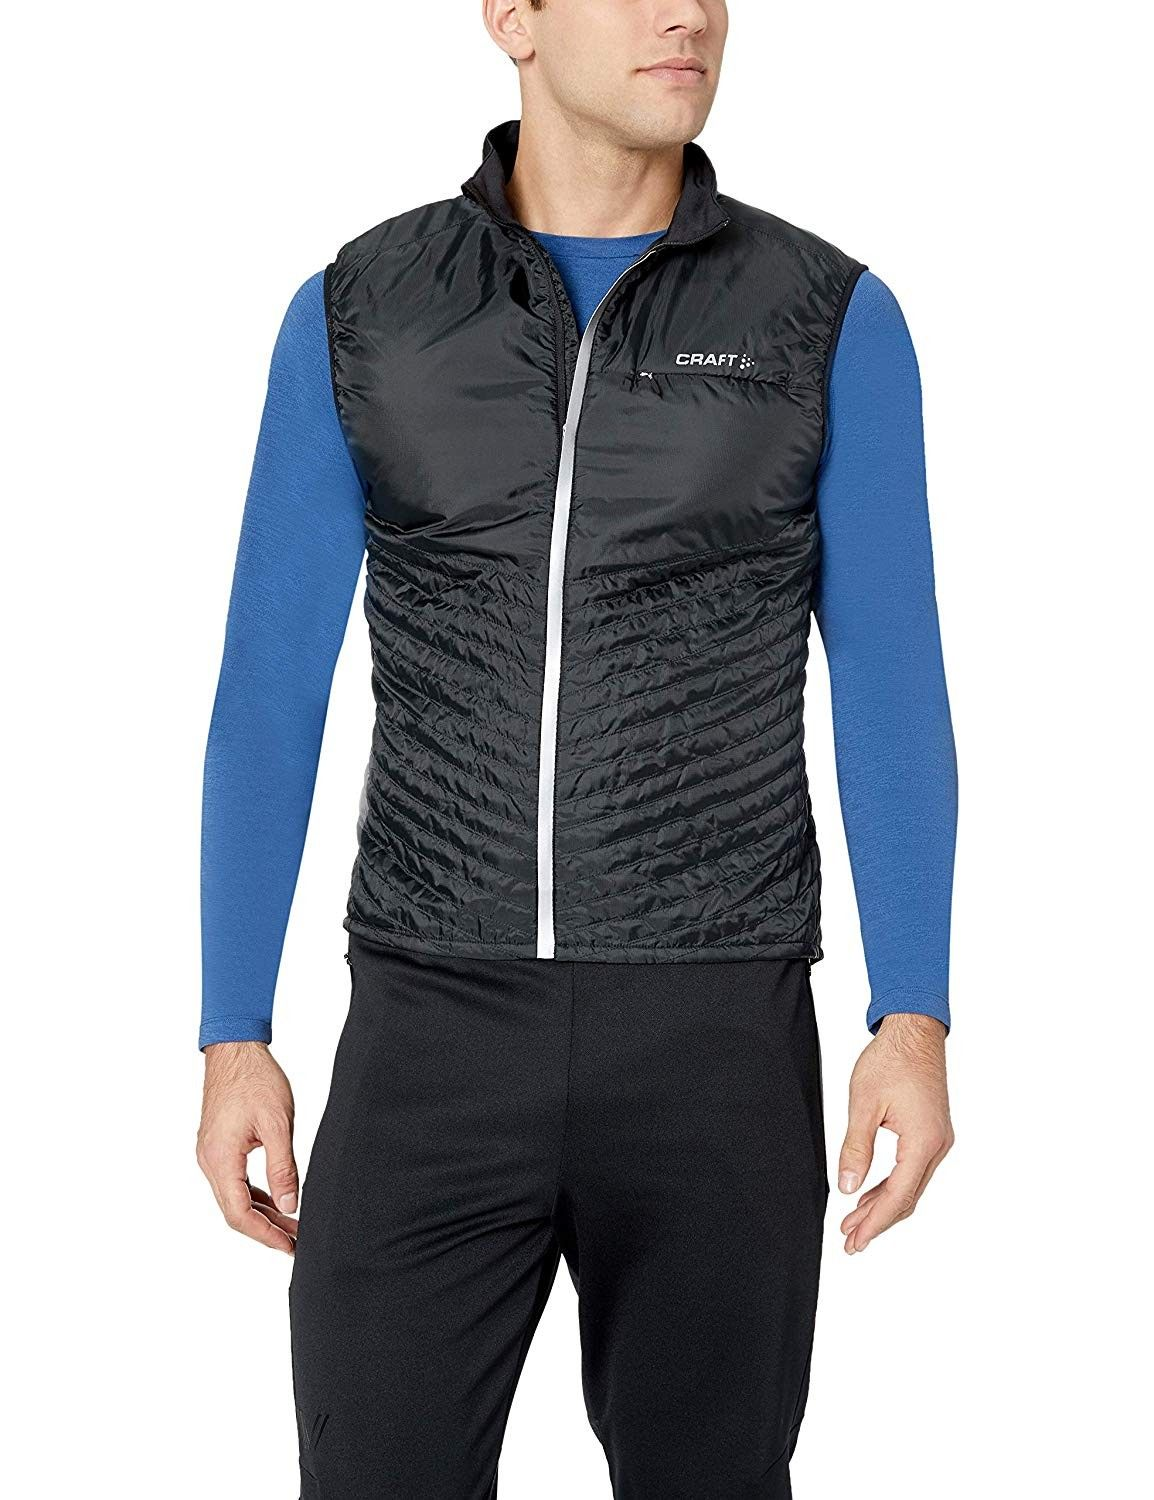 Men's Urban Run Running and Training Outdoor Sport Reflective Quilted Body Warmer Vest - Black/Silve...